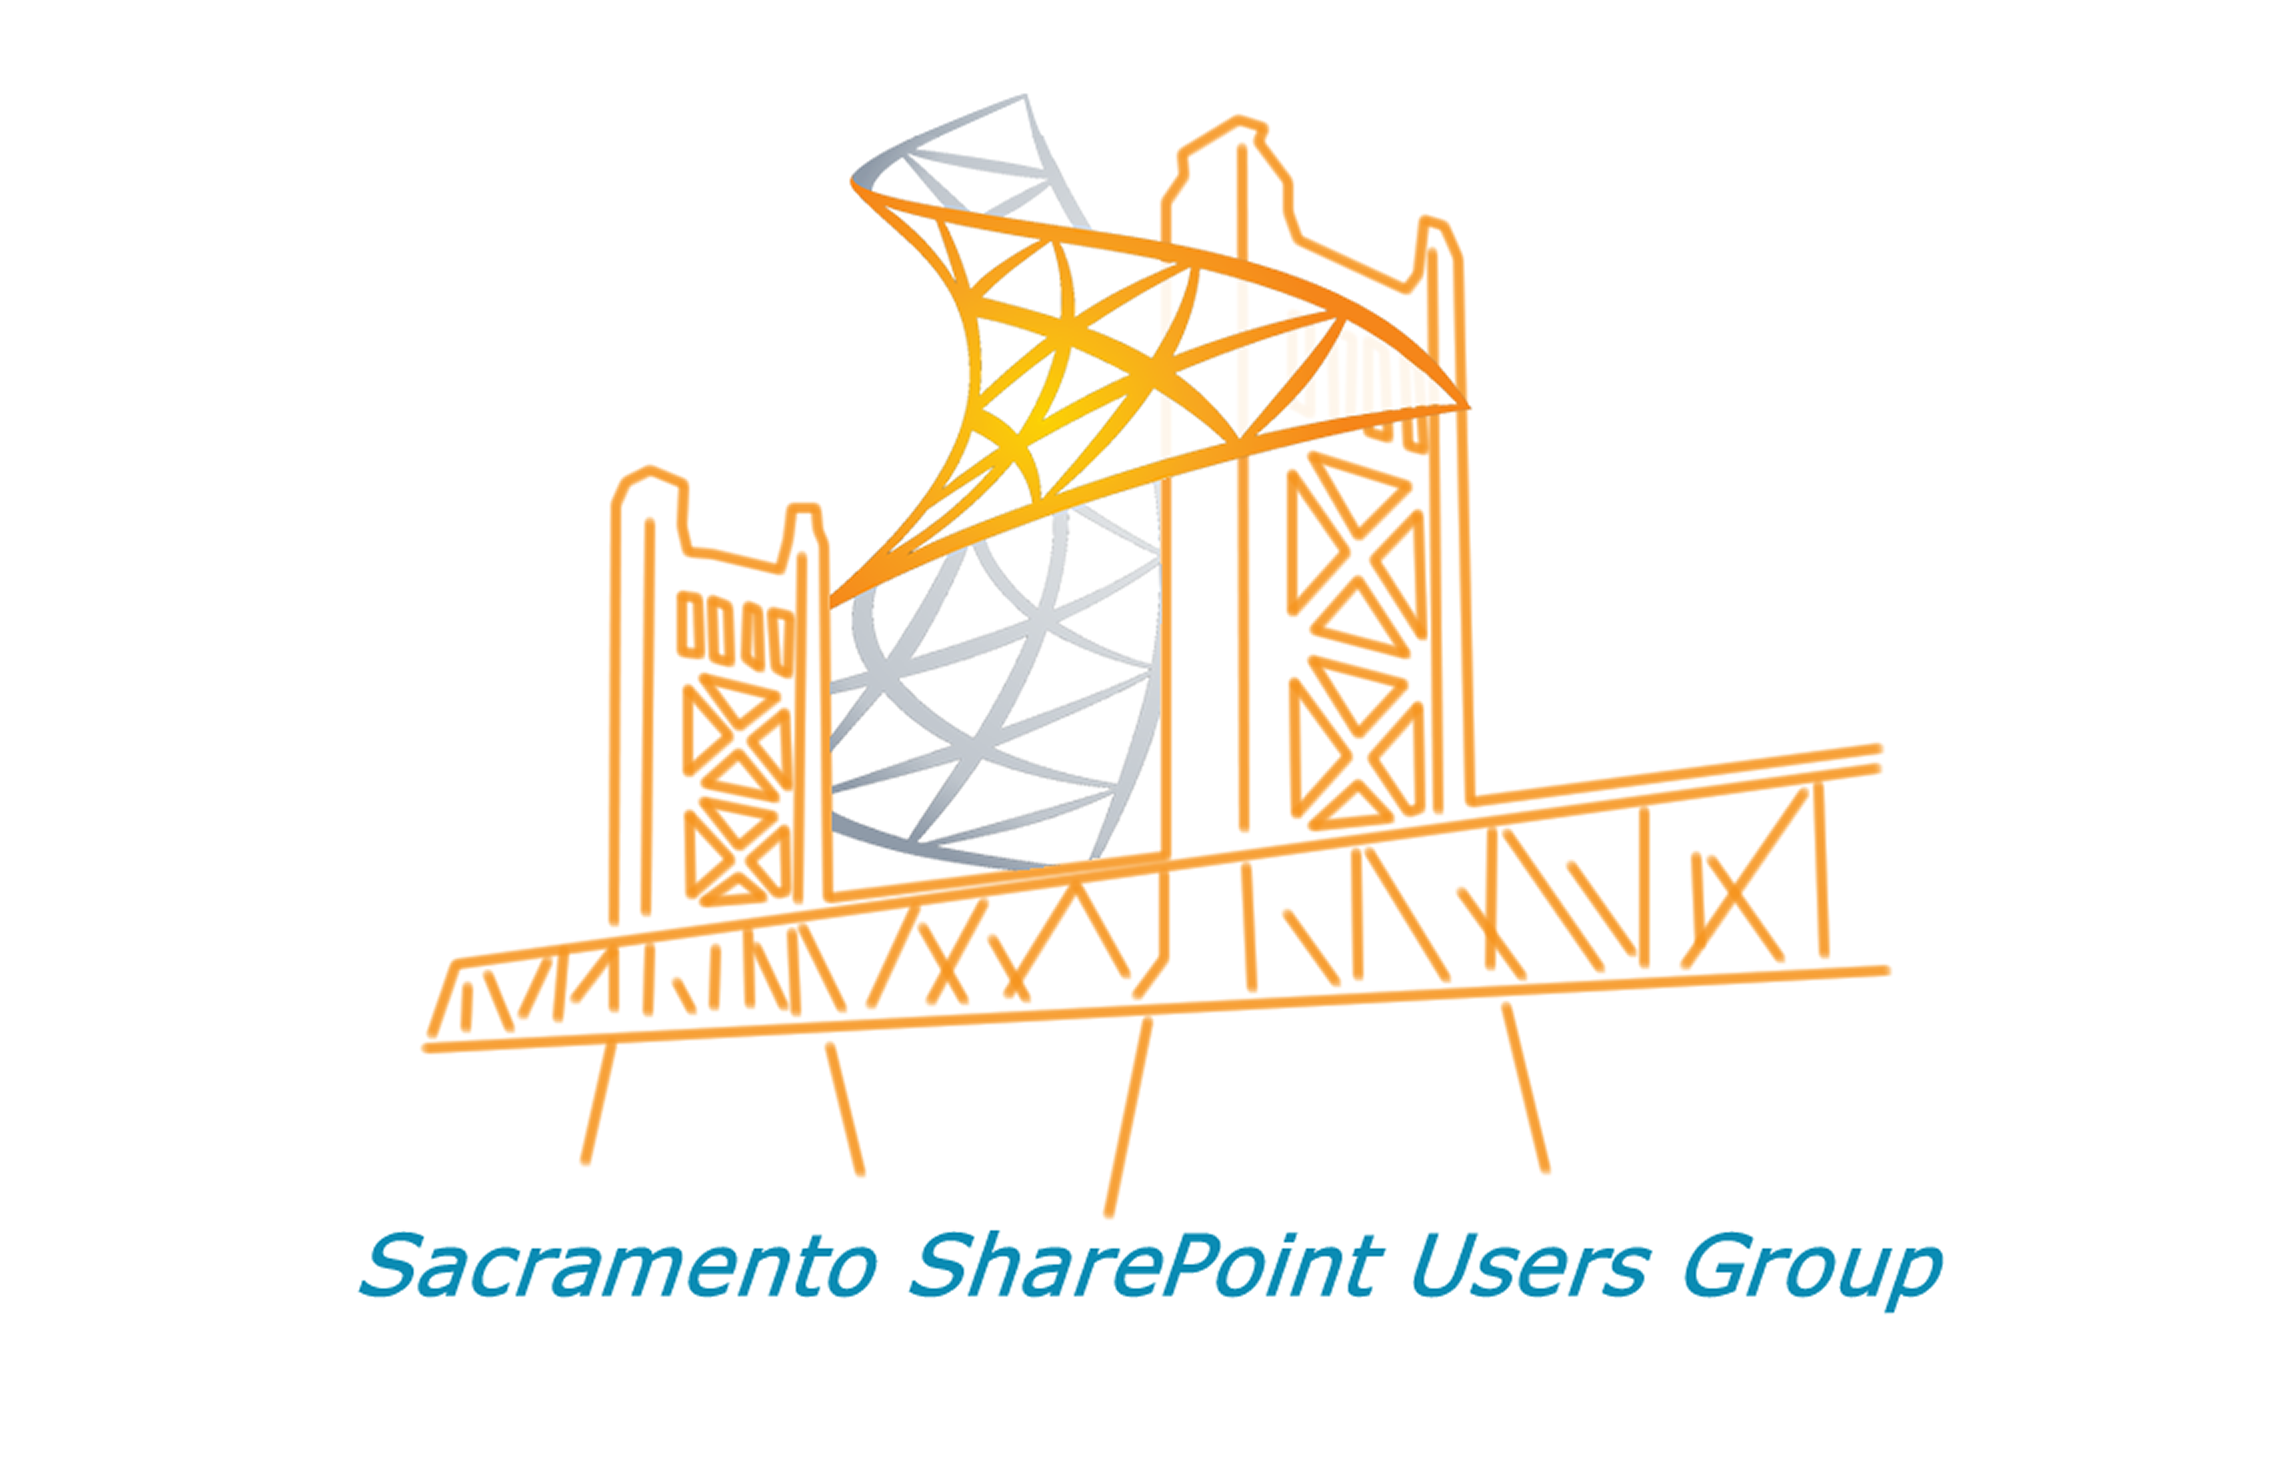 SACSPUG - is managed by SharePoint Champions, under the Direction of Cynthia Colmenares, Executive Director and CEO of Jack Frost Design.